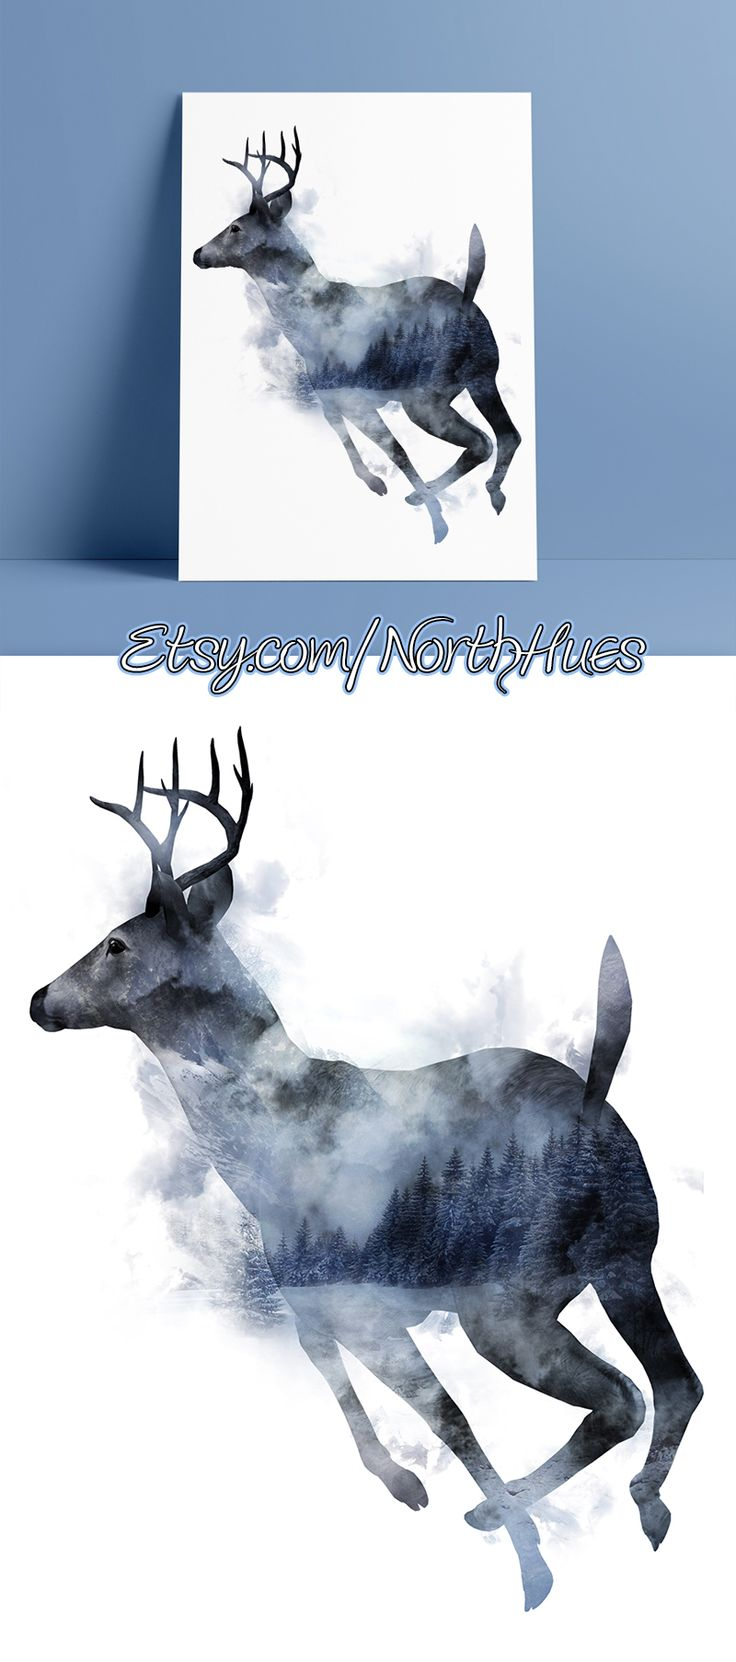 Winter Forest Deer Poster! Instant Download Poster Design. Double Exposure. https://www.etsy.com/no-en/listing/524098146/winter-forest-deer-double-exposure?ref=shop_home_active_5